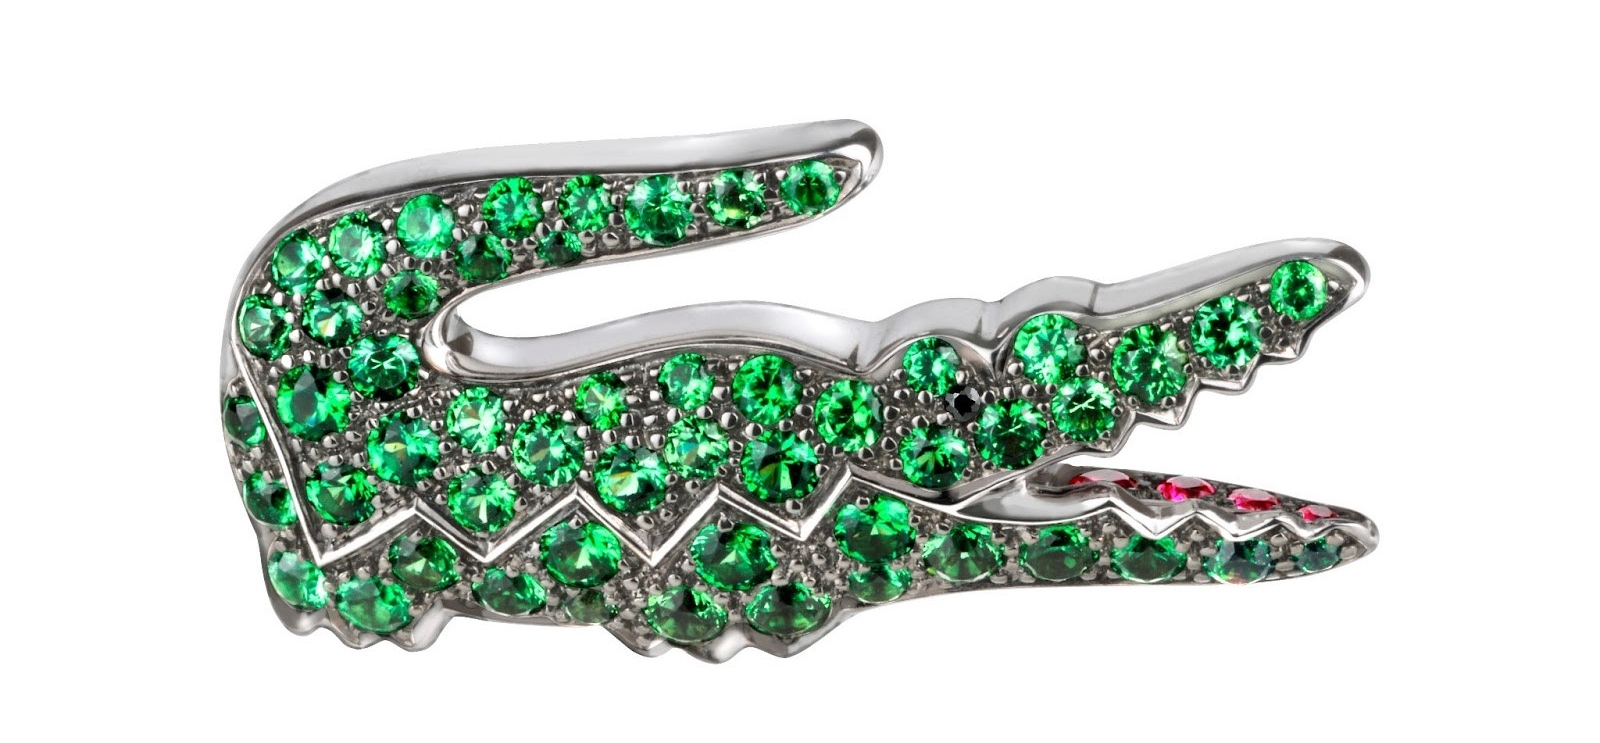 Lacoste-Maisons-Francaises-80th-Anniversary-Collection-Boucheron-Brooch-Green